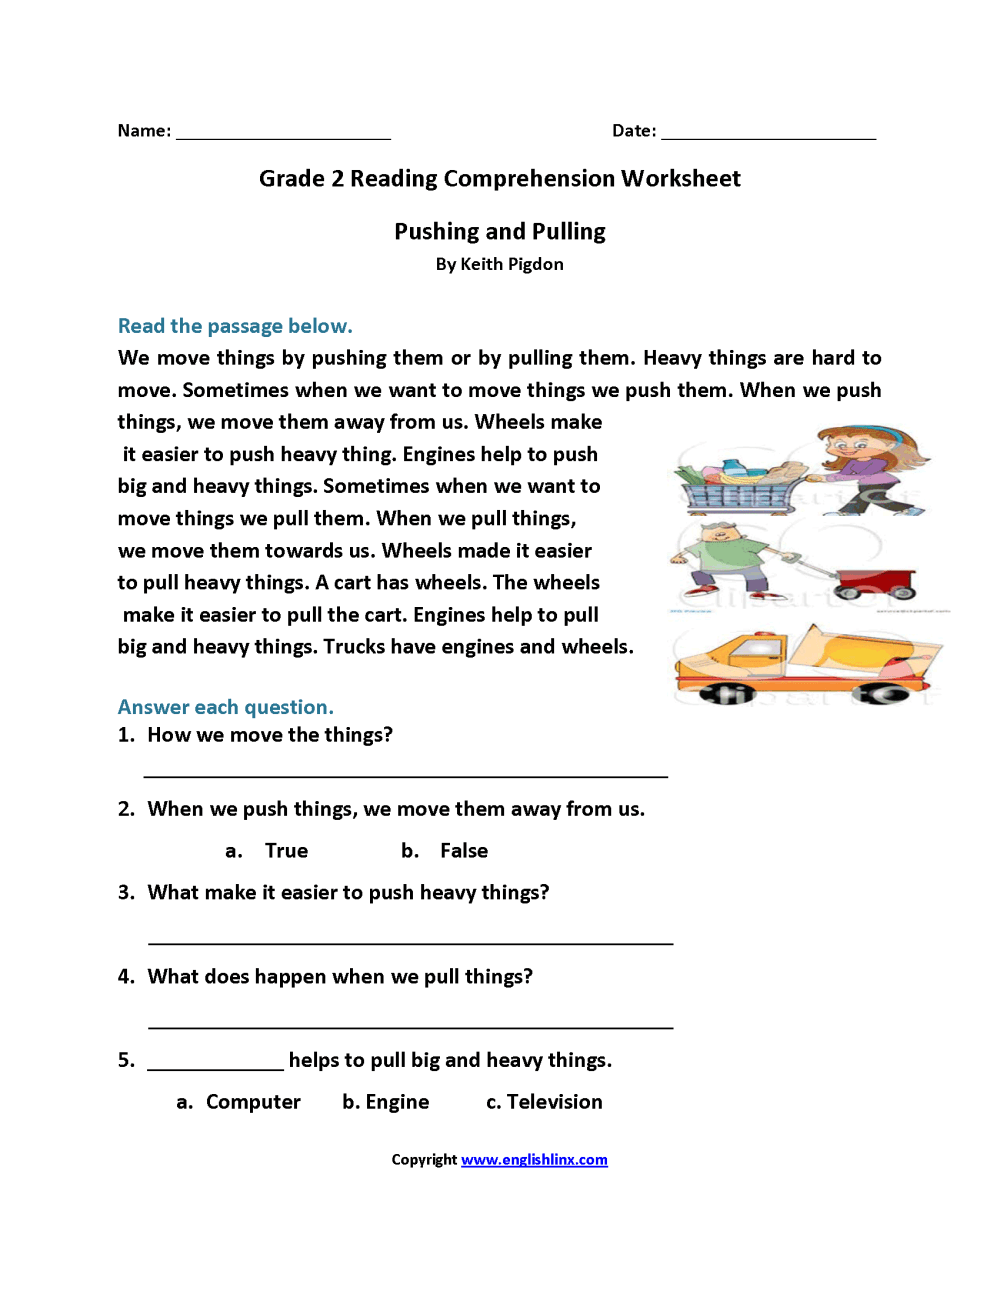 medium resolution of 20 Best Easy 2nd Grade Reading Worksheets images on Best Worksheets  Collection